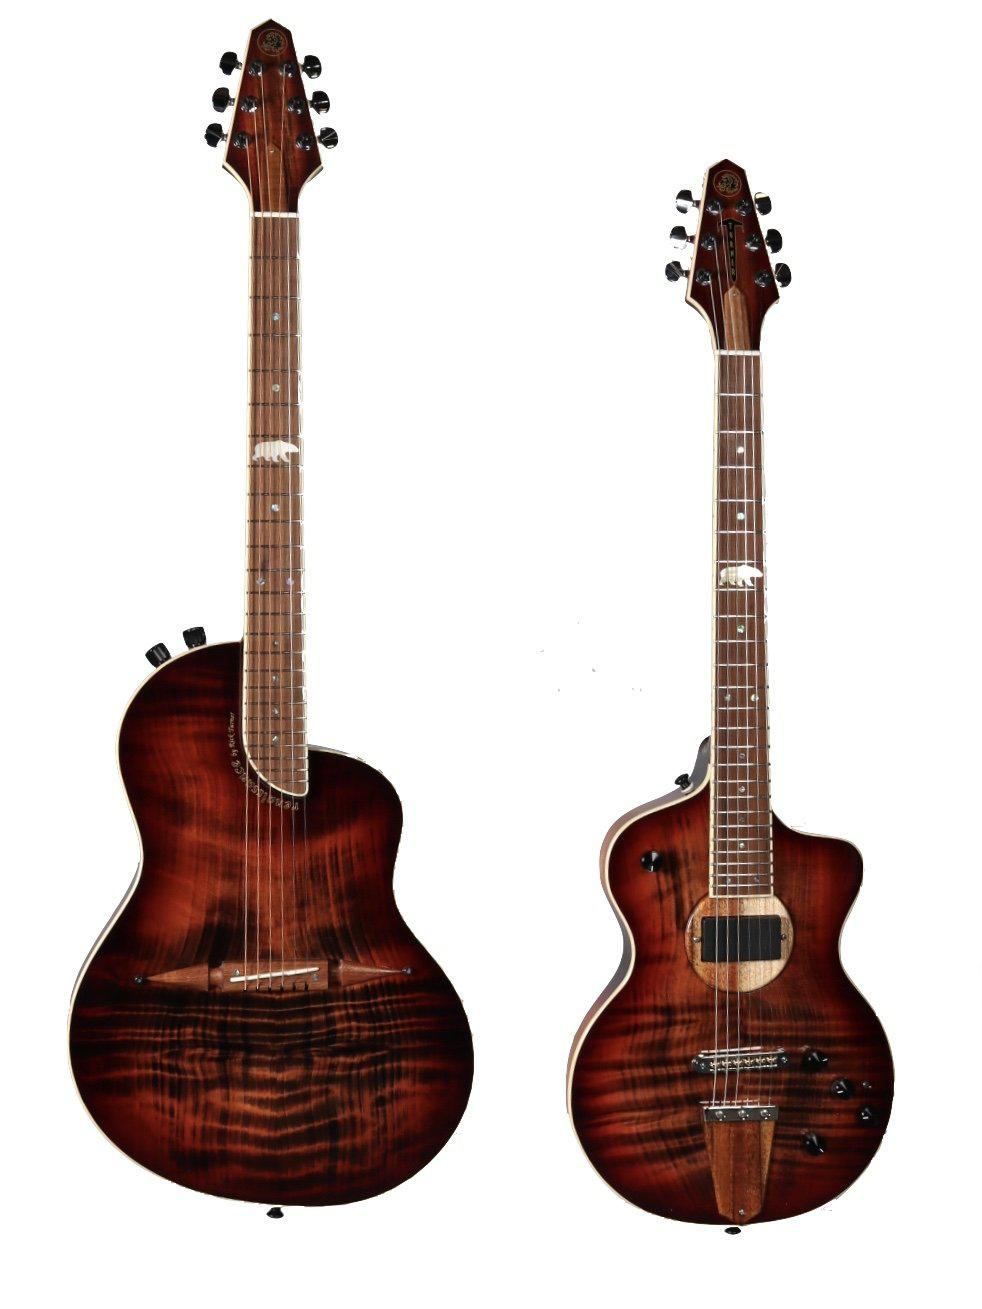 Rick Turner California Series Model 1 and Renaissance RS6 #3 of 5 (Sunburst Finish) - Rick Turner Guitars - Heartbreaker Guitars